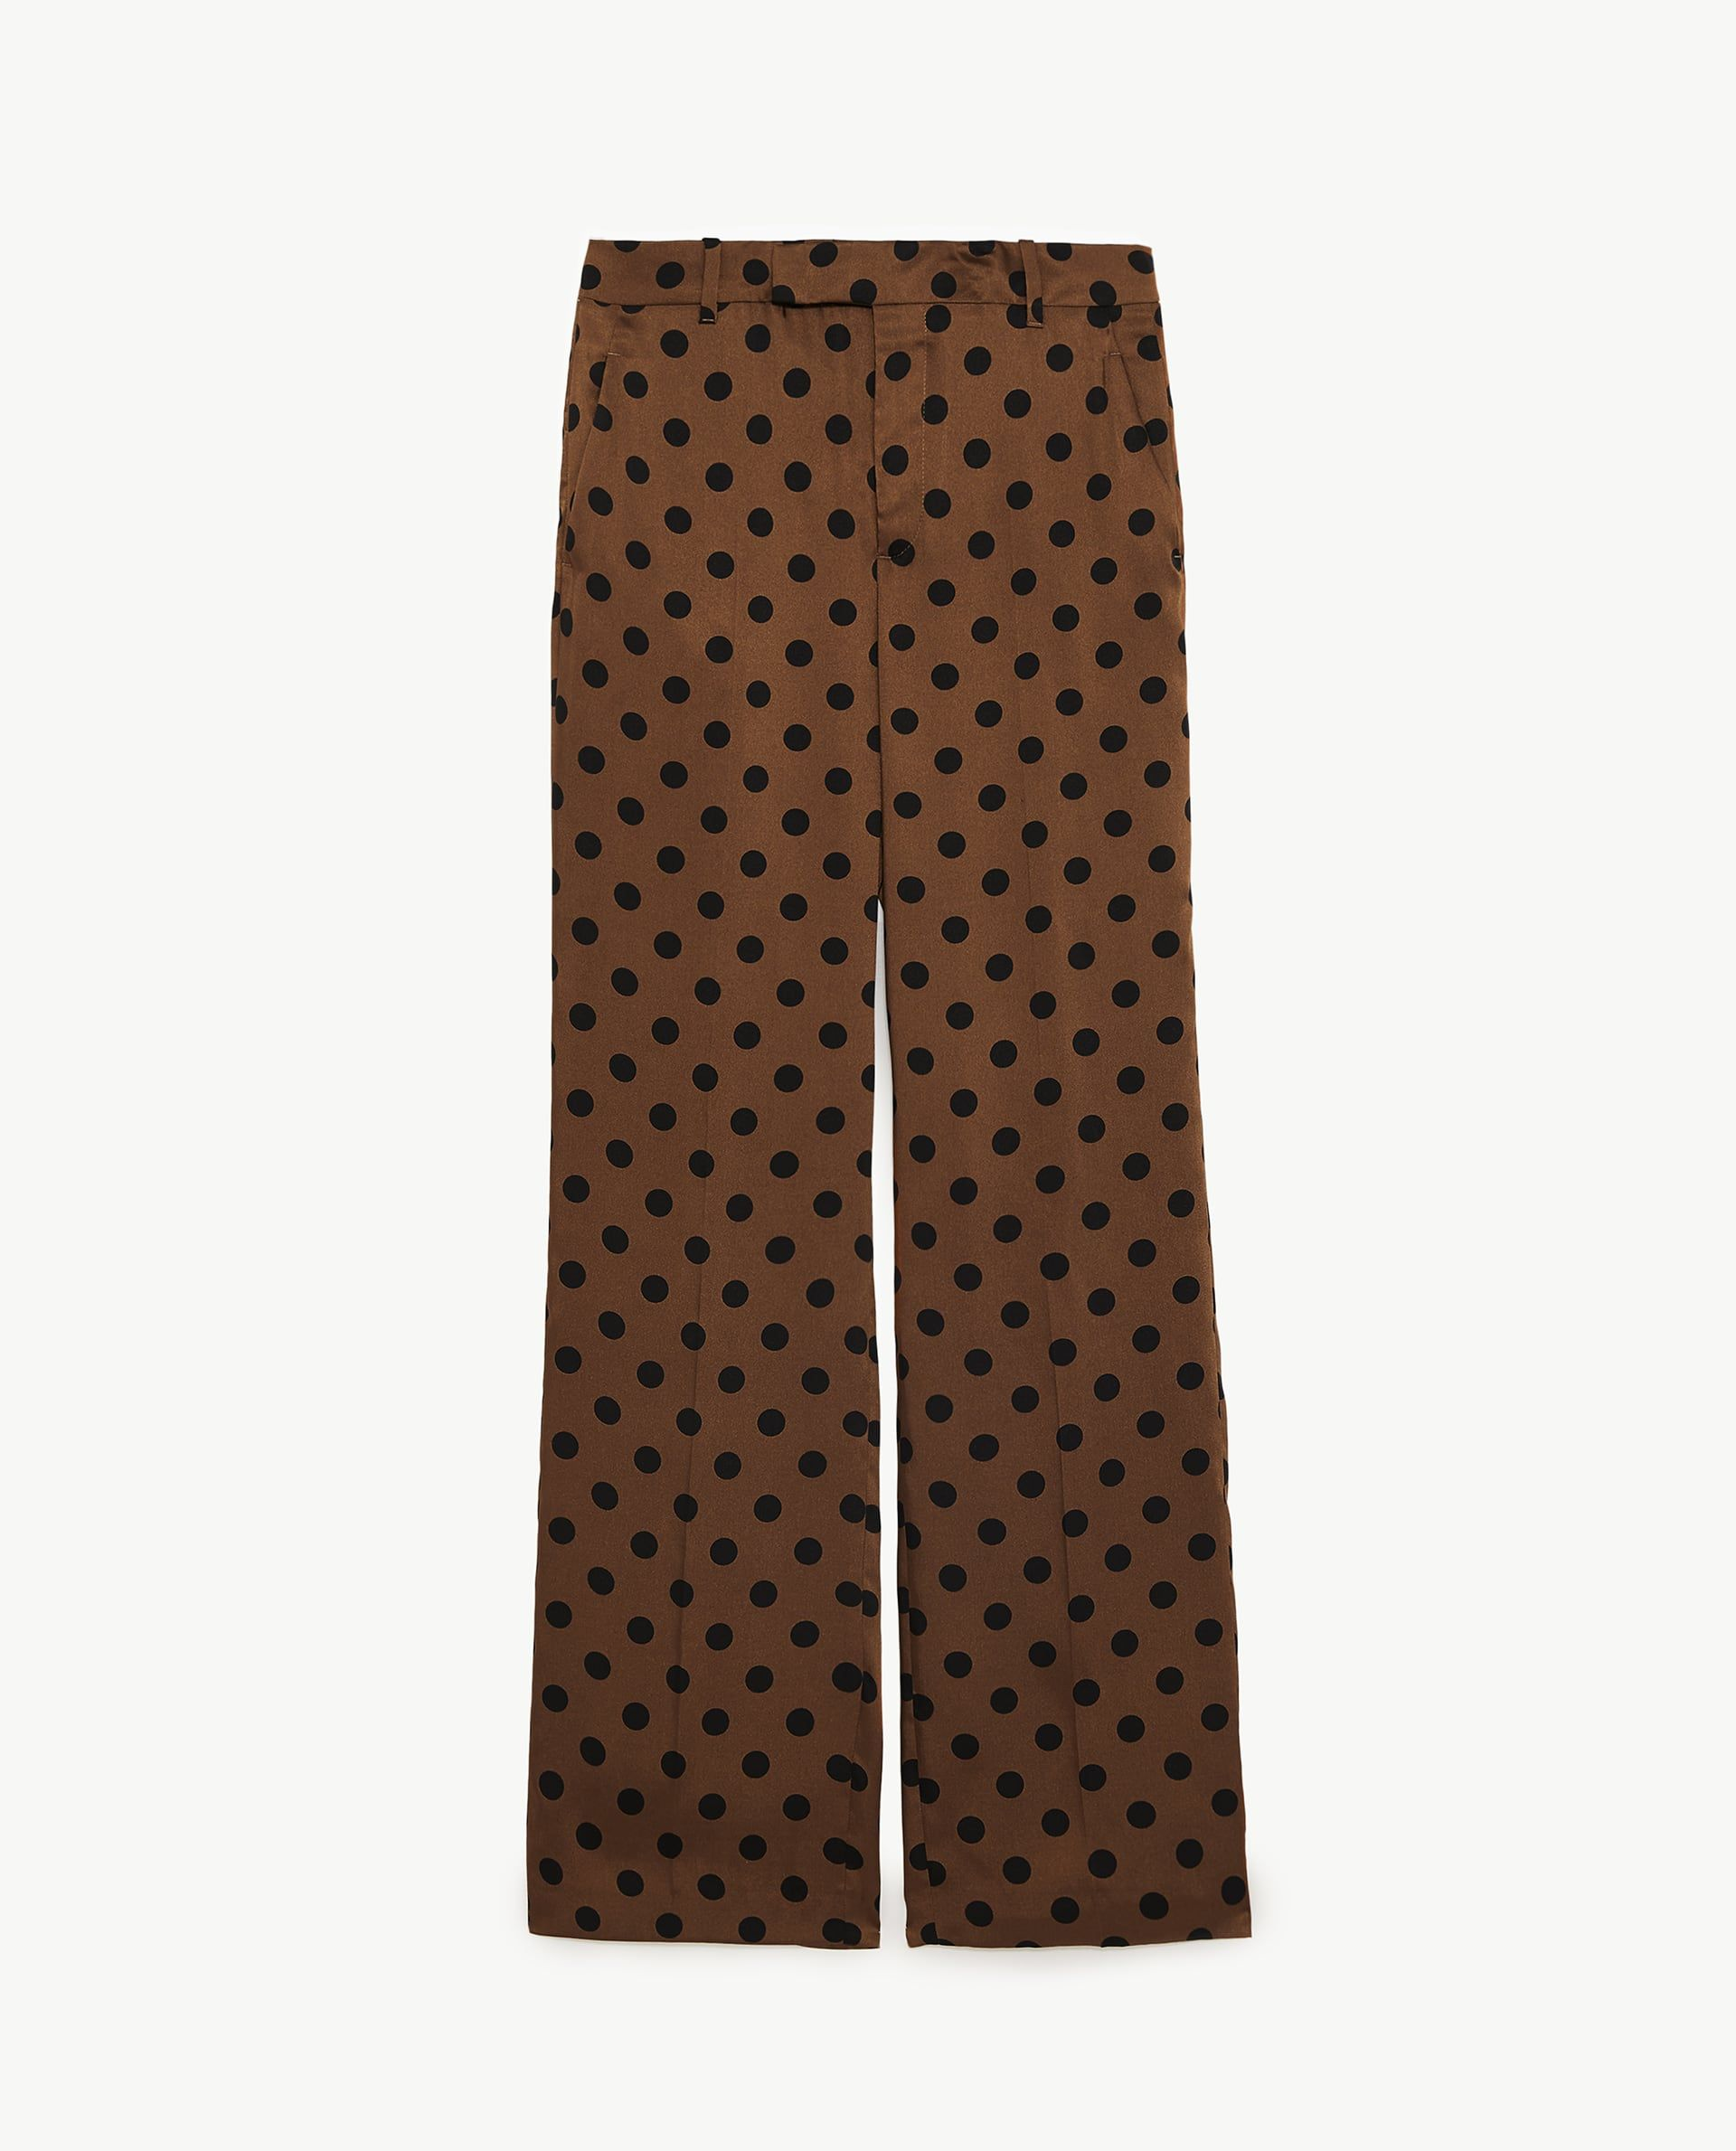 622b0561b63d Image 6 of POLKA DOT TROUSERS from Zara | GET IN MY CLOSET ...